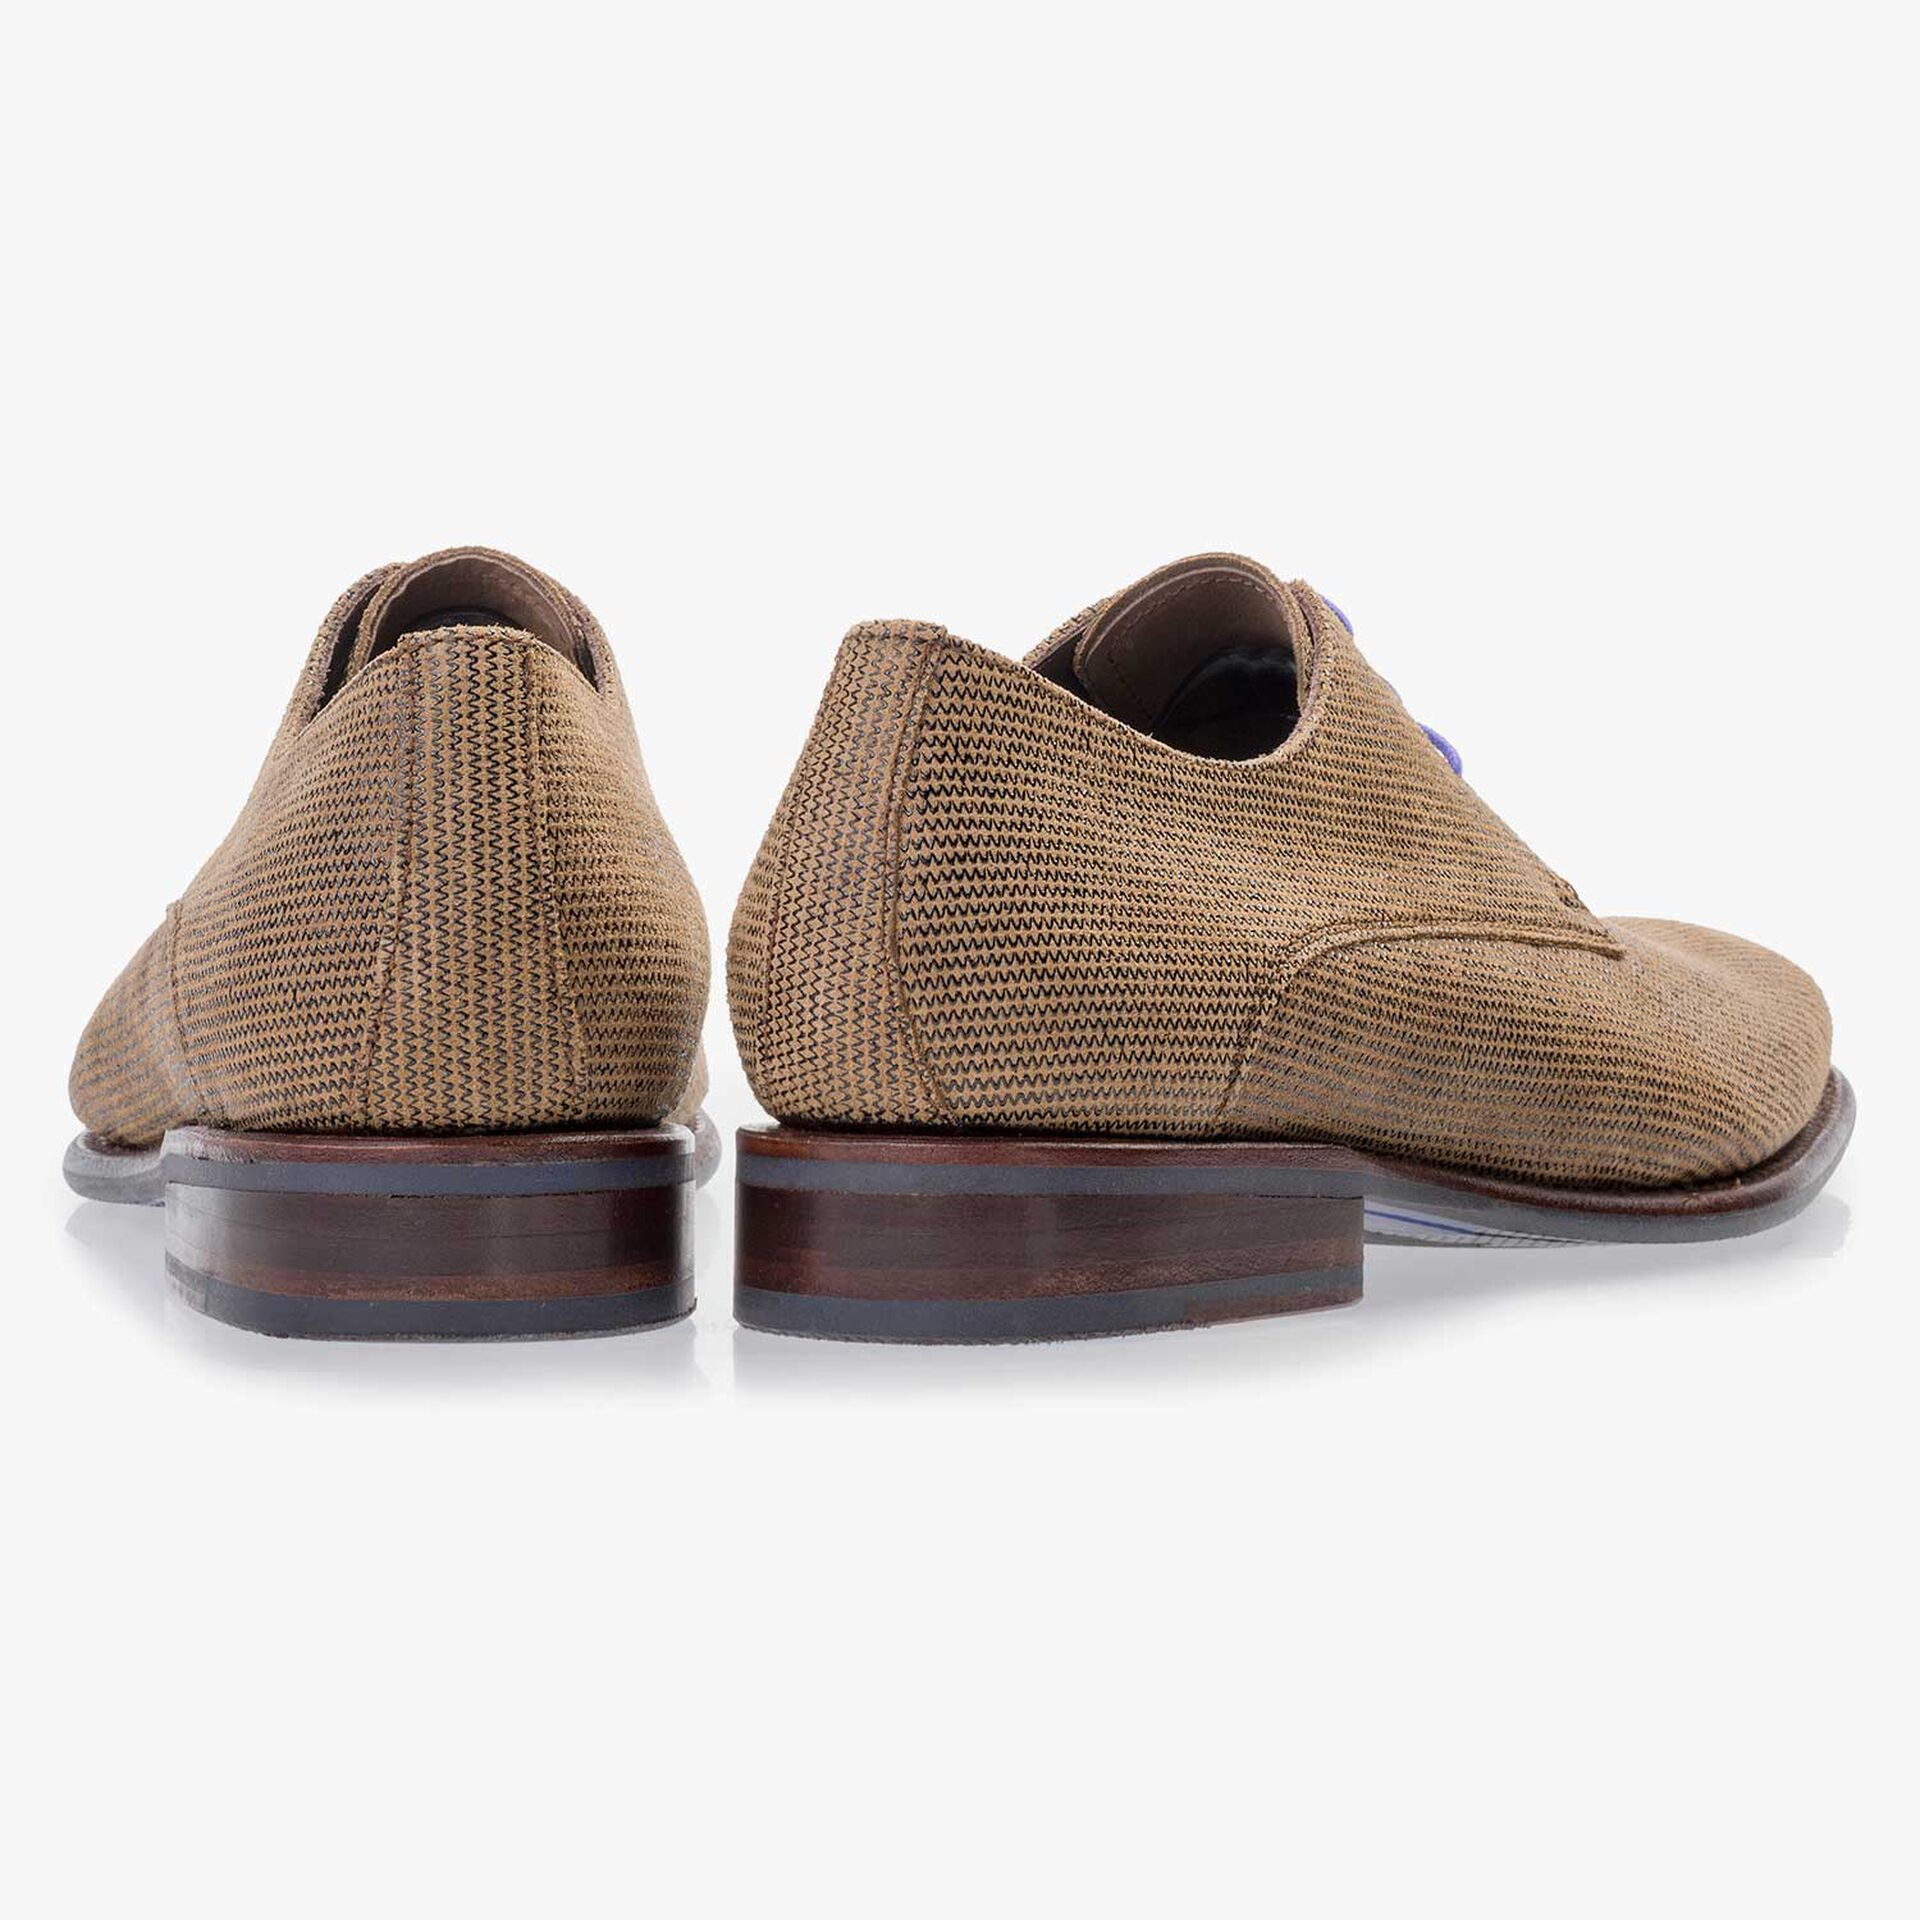 Brown lace shoe made of suede leather